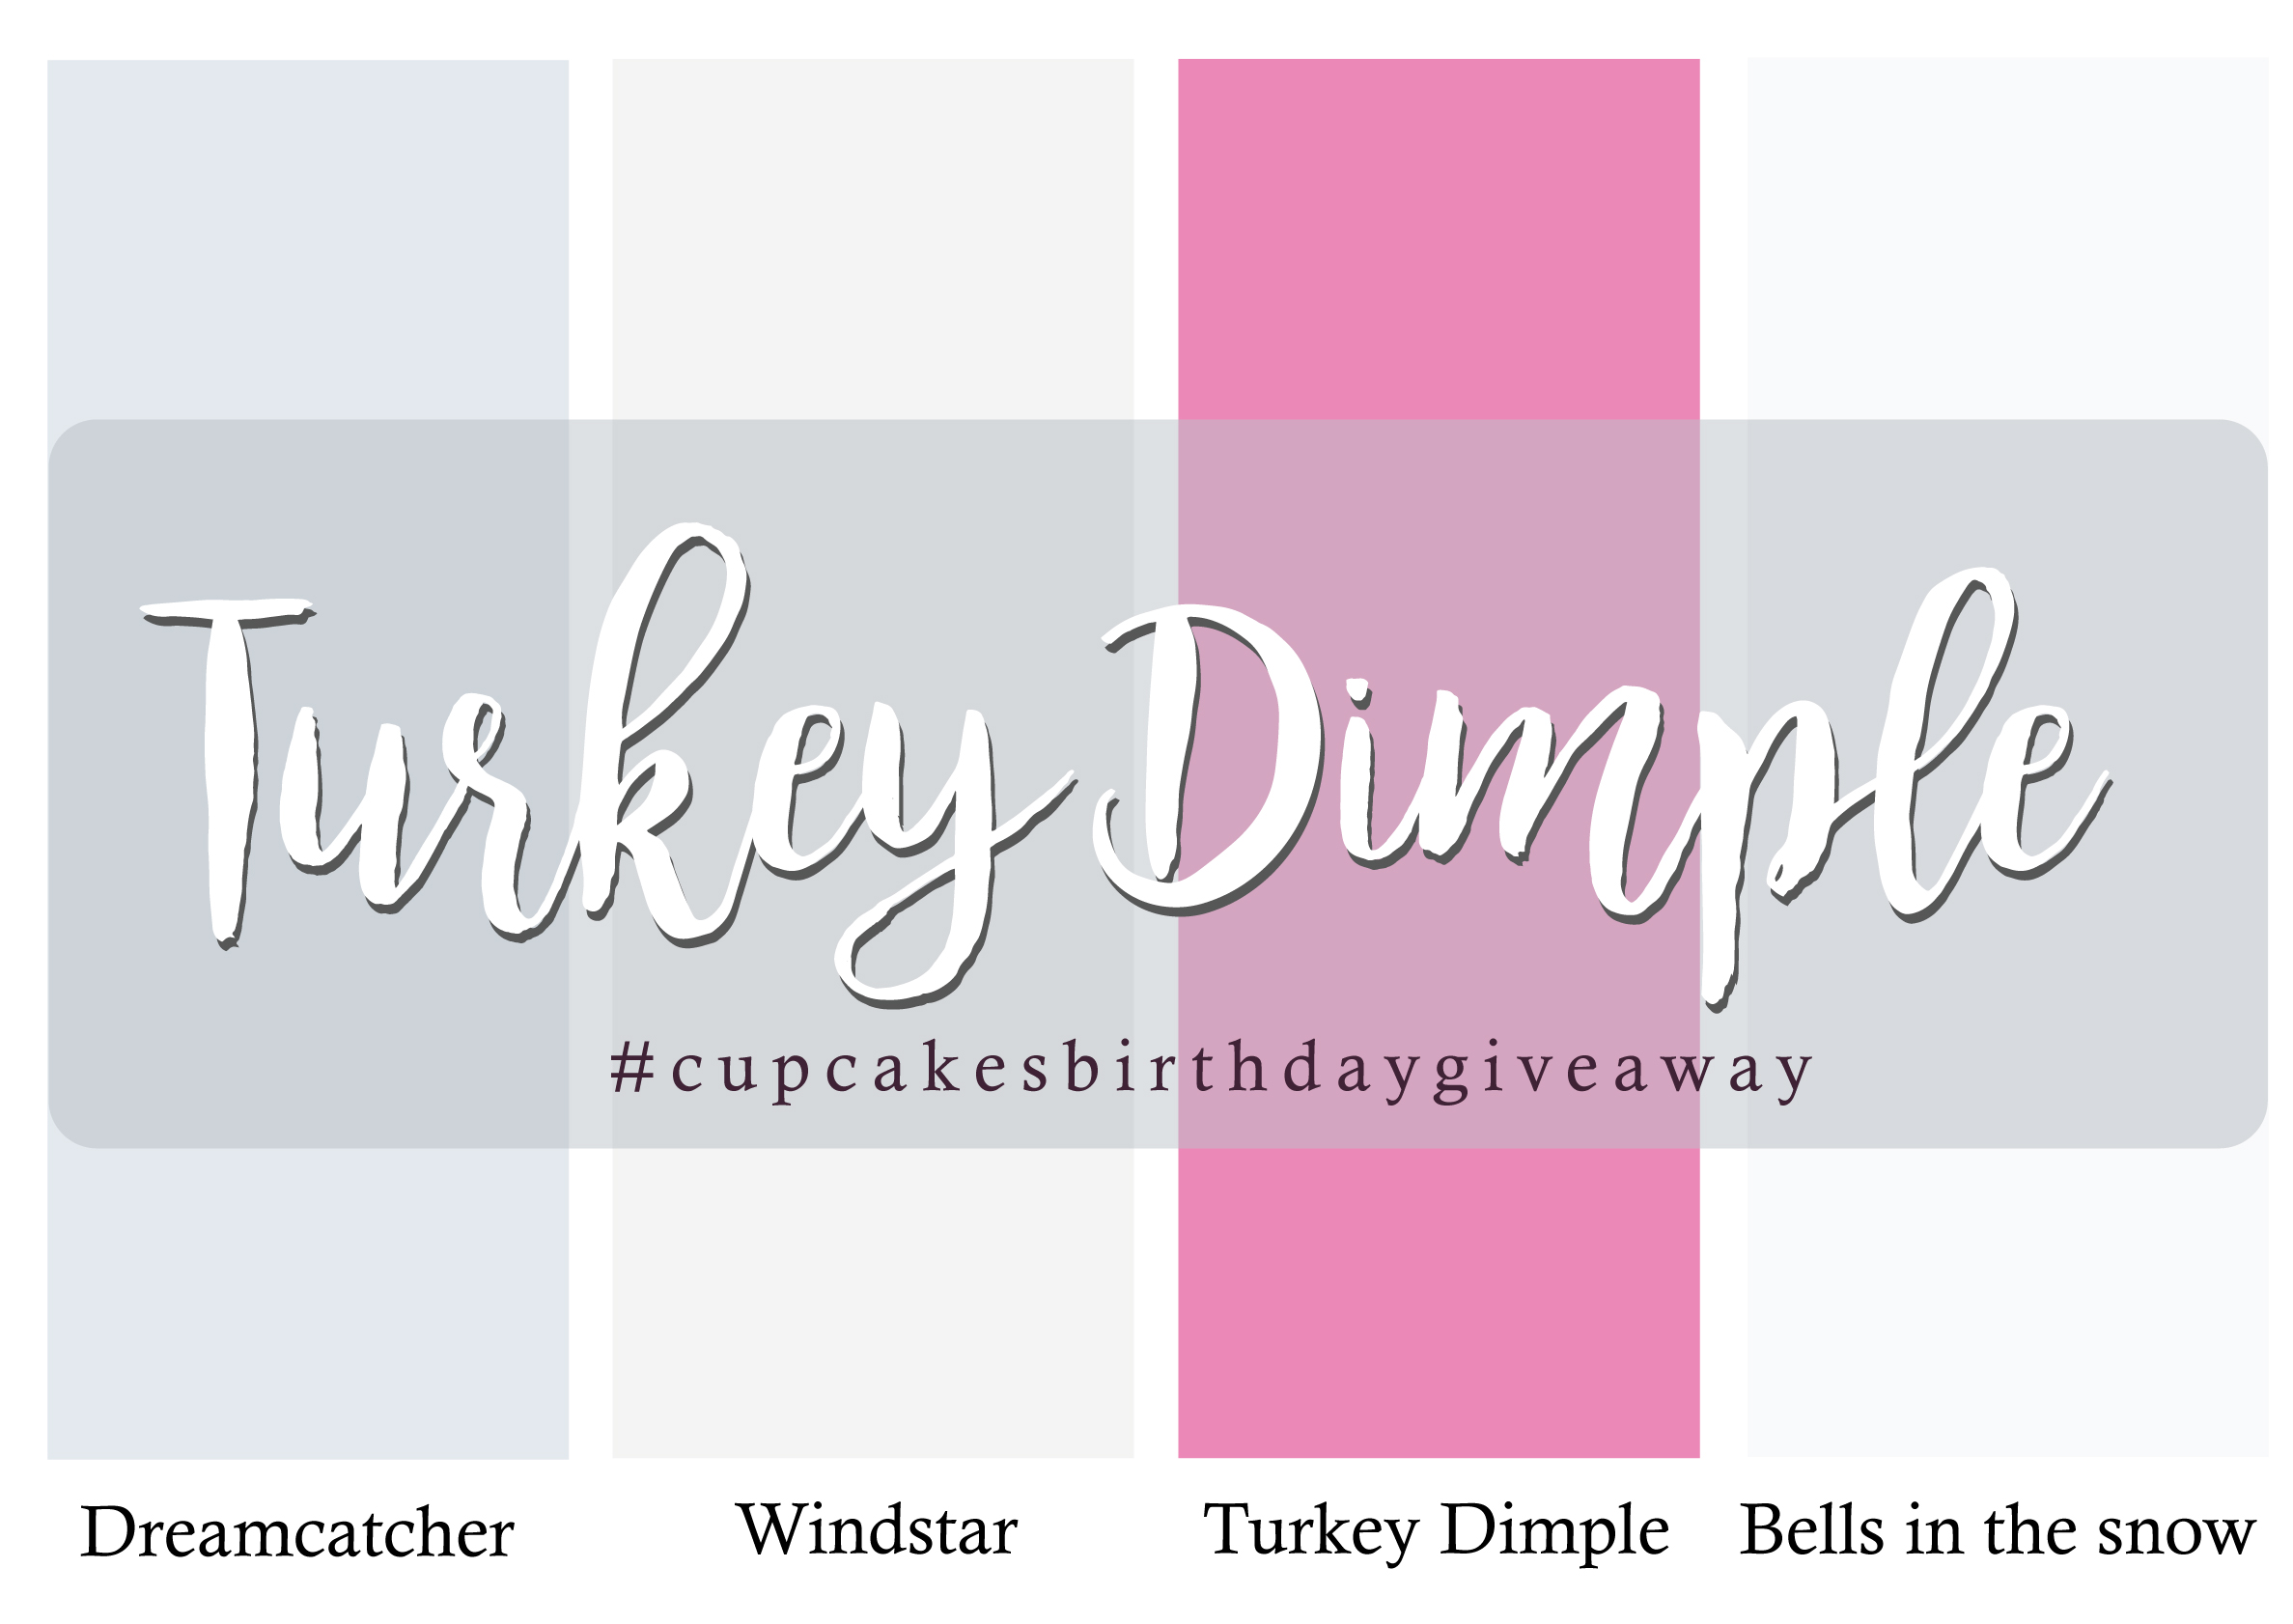 DAY FOUR > Turkey Dimple